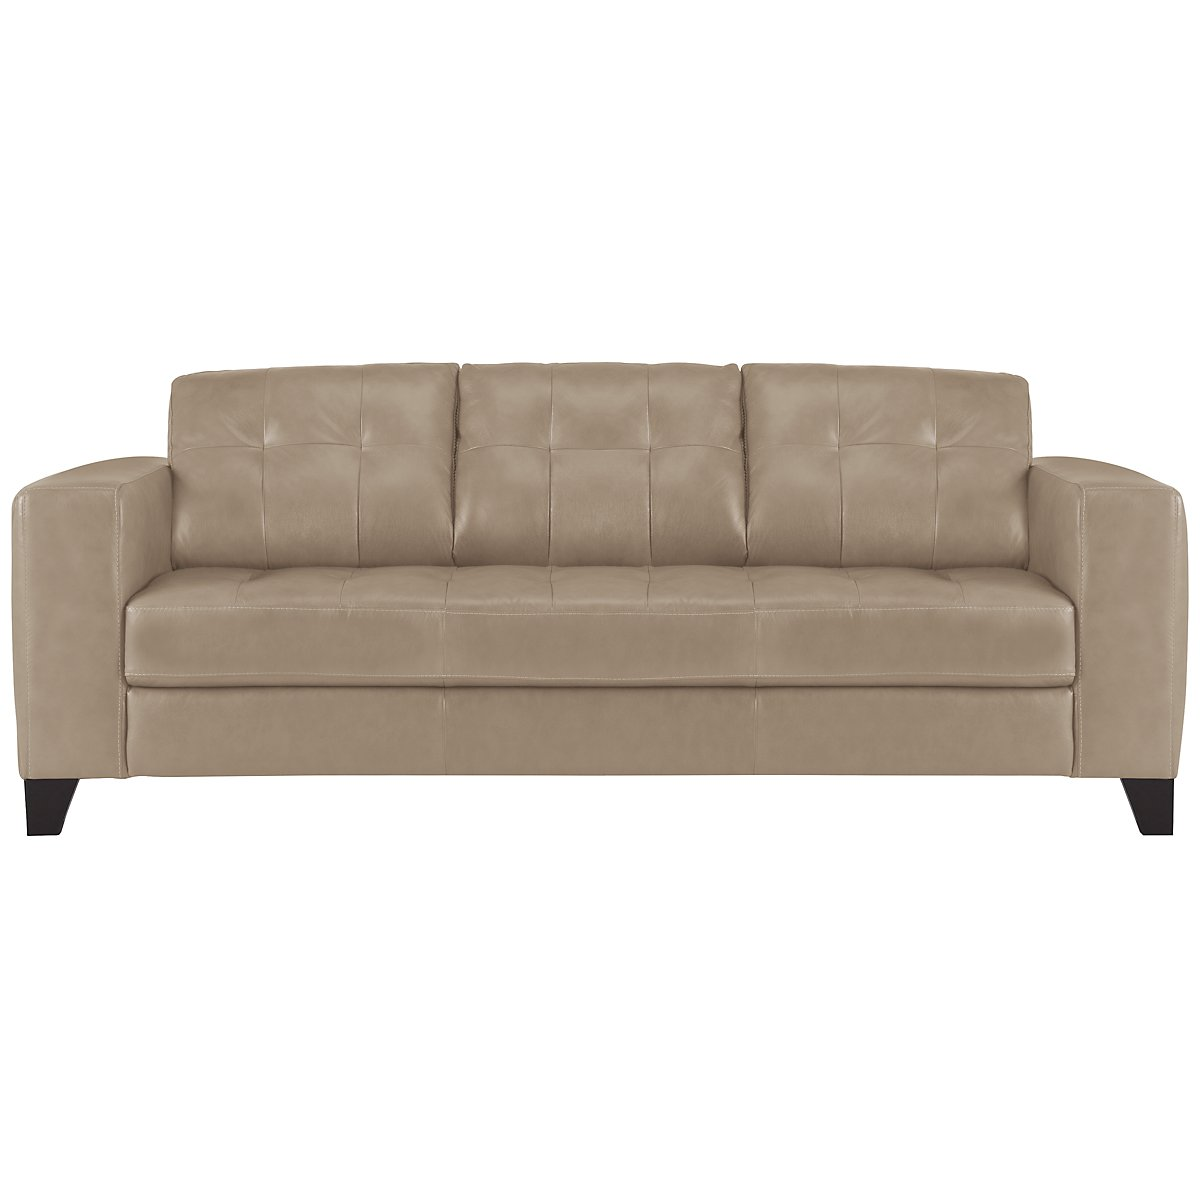 Elle Lt Taupe Leather & Bonded Leather Sofa